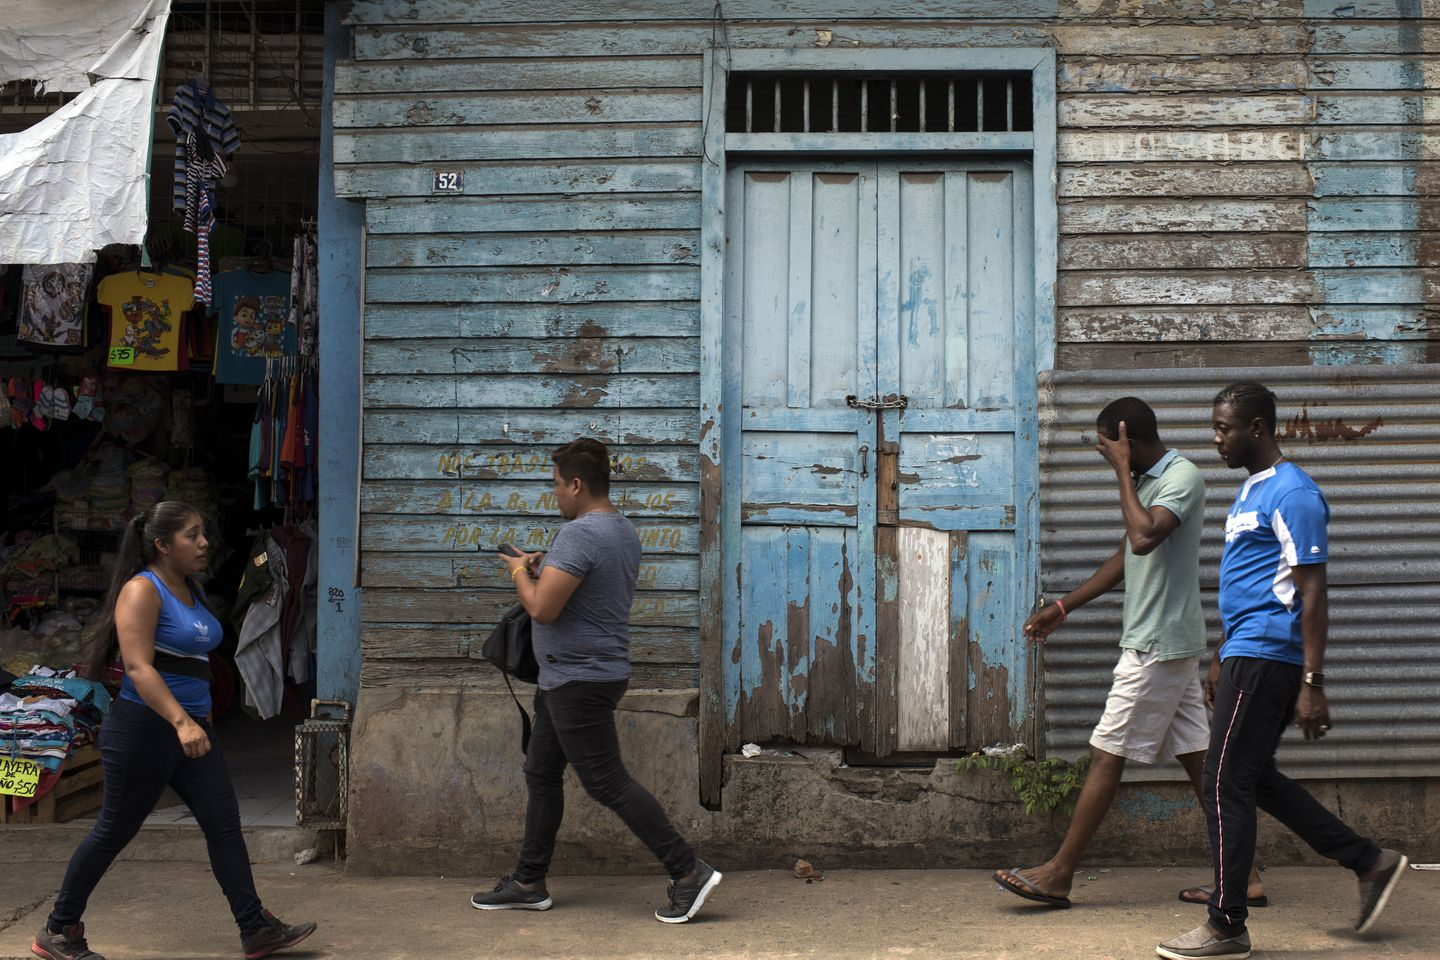 African migrants walk in the streets of Tapachula, heading to the central park. The arrival of African and other migrants is changing the demographics of this Mexican town.